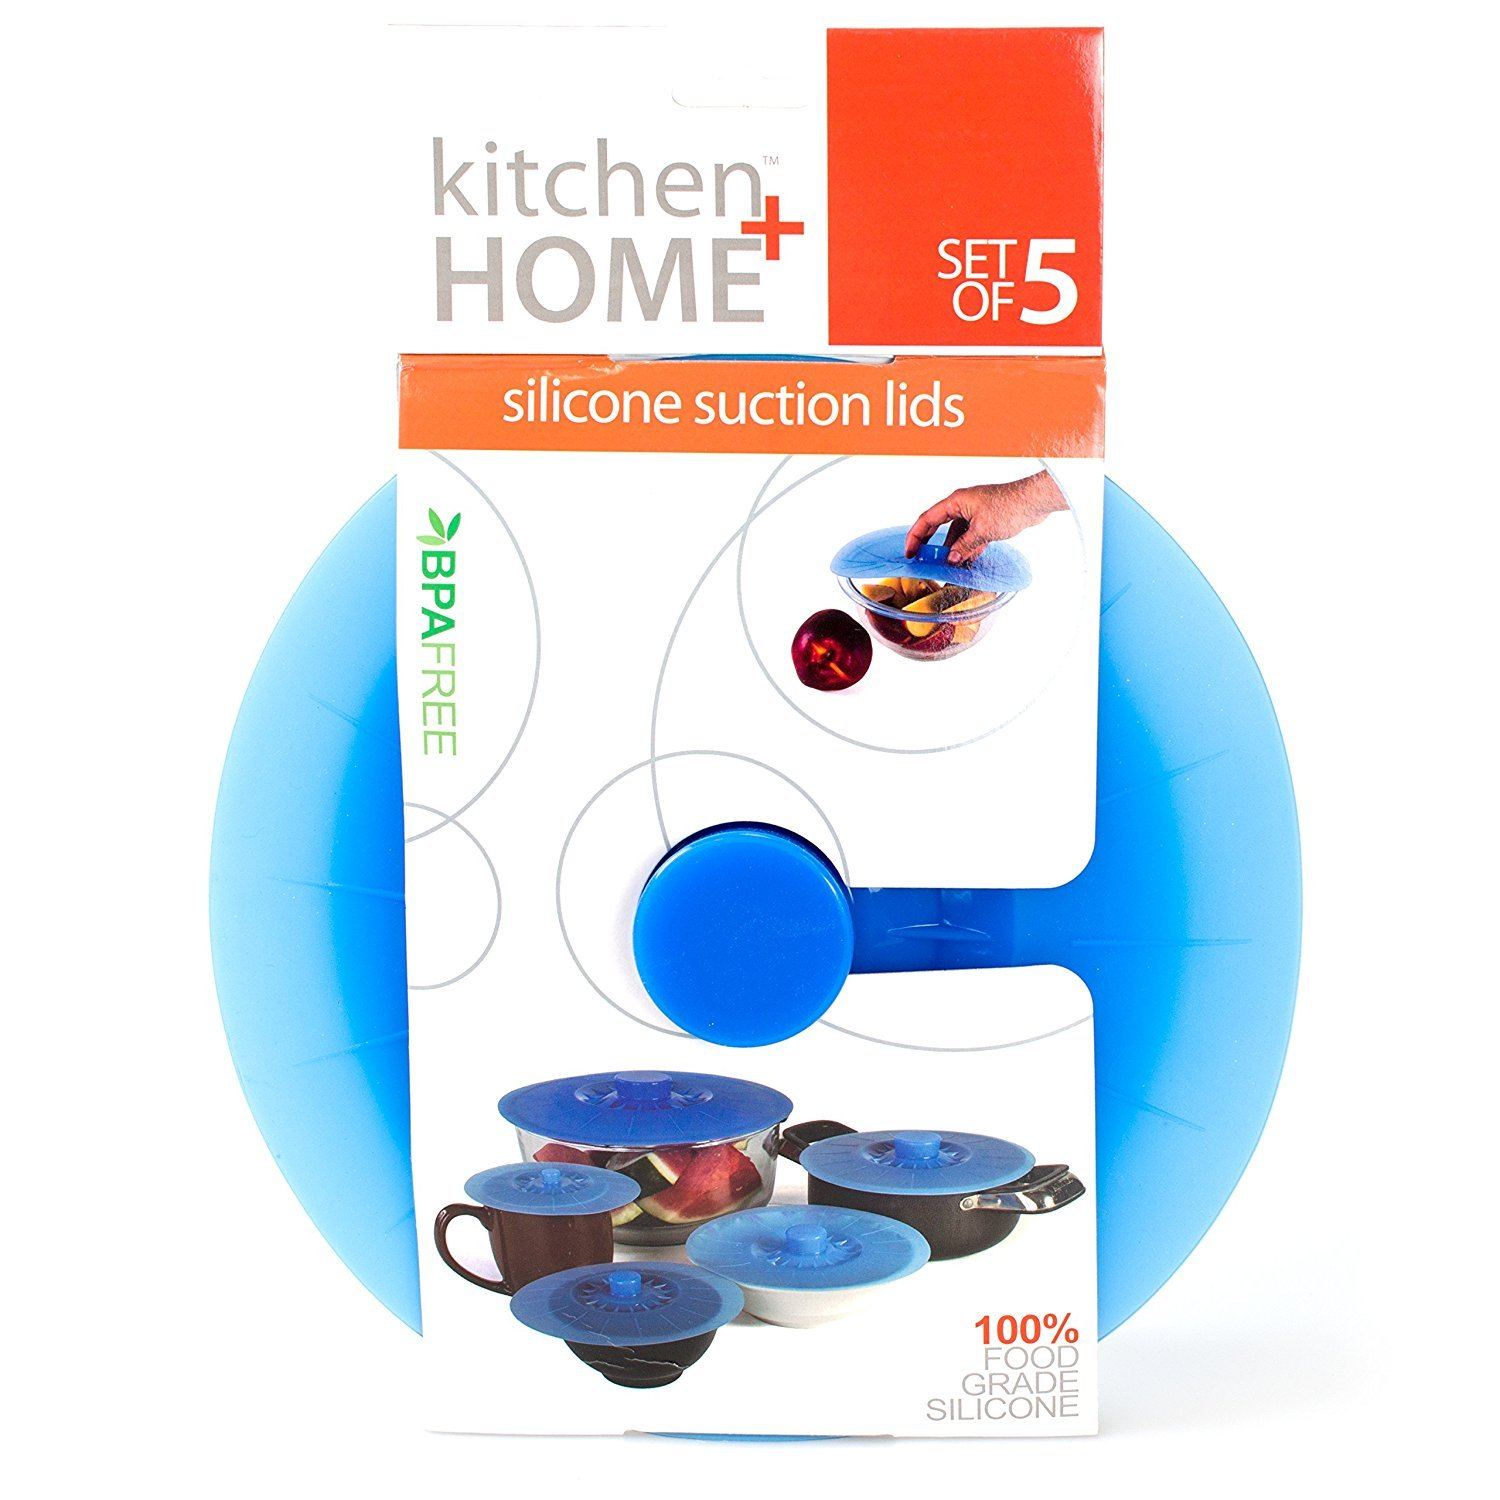 Kitchen + Home Silicone Suction Lids and Food Covers - Set of 5 - Fits various sizes of cups, bowls, pans, or containers!